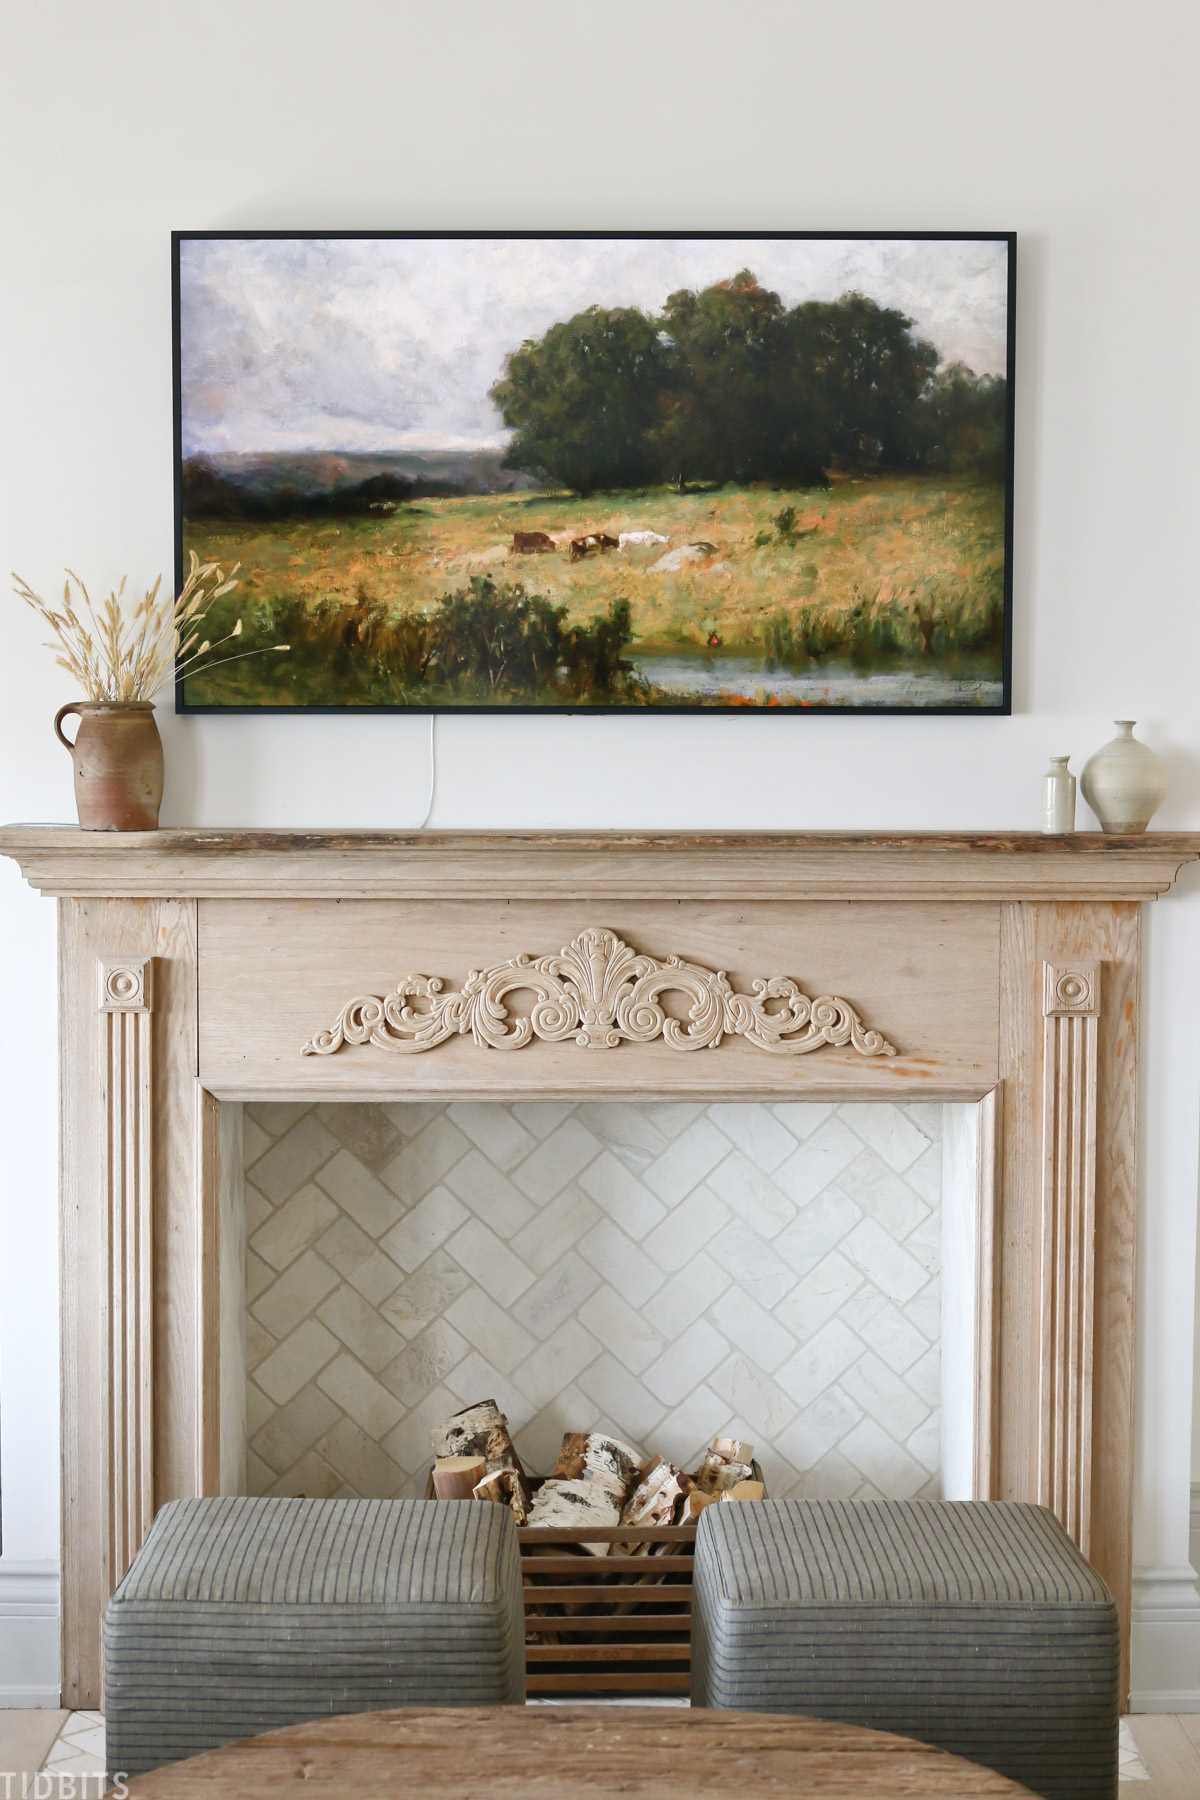 faux fireplace mantel with wood placed inside fireplace and vintage painting above mantel